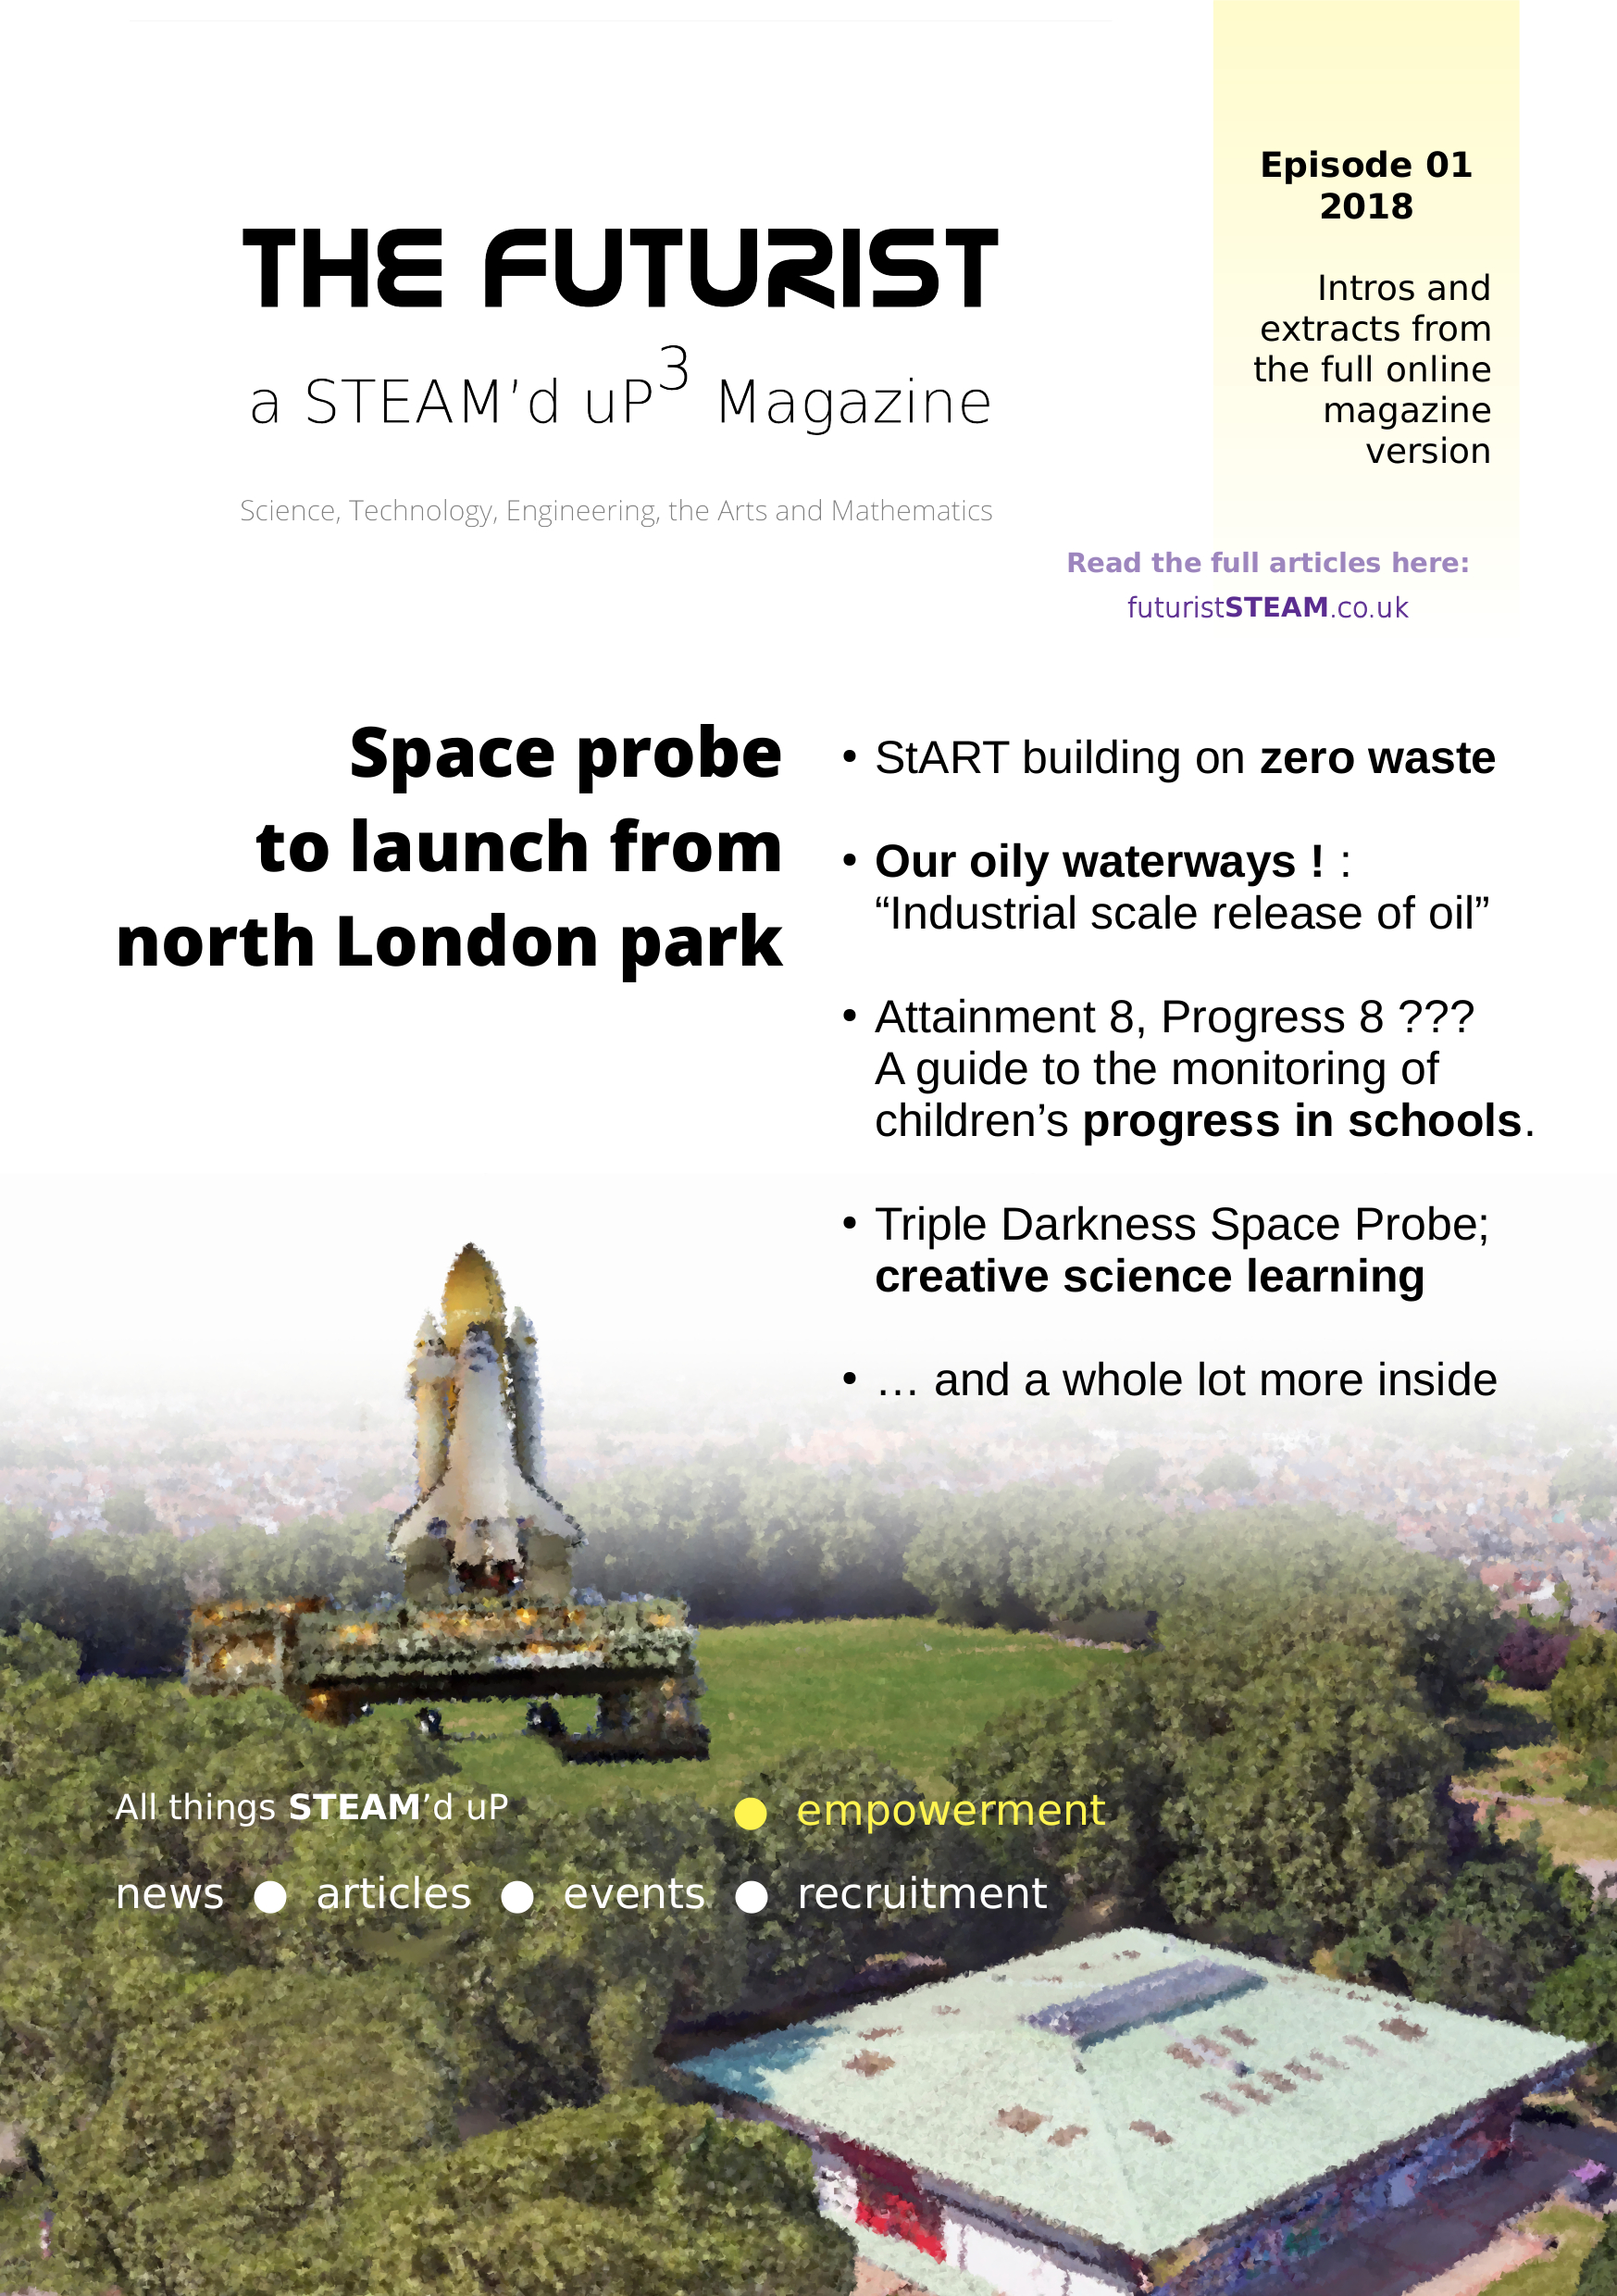 The Futurist (Haringey) Magazine Cover                   https://fu-kiosk.futuriststeam.co.uk/